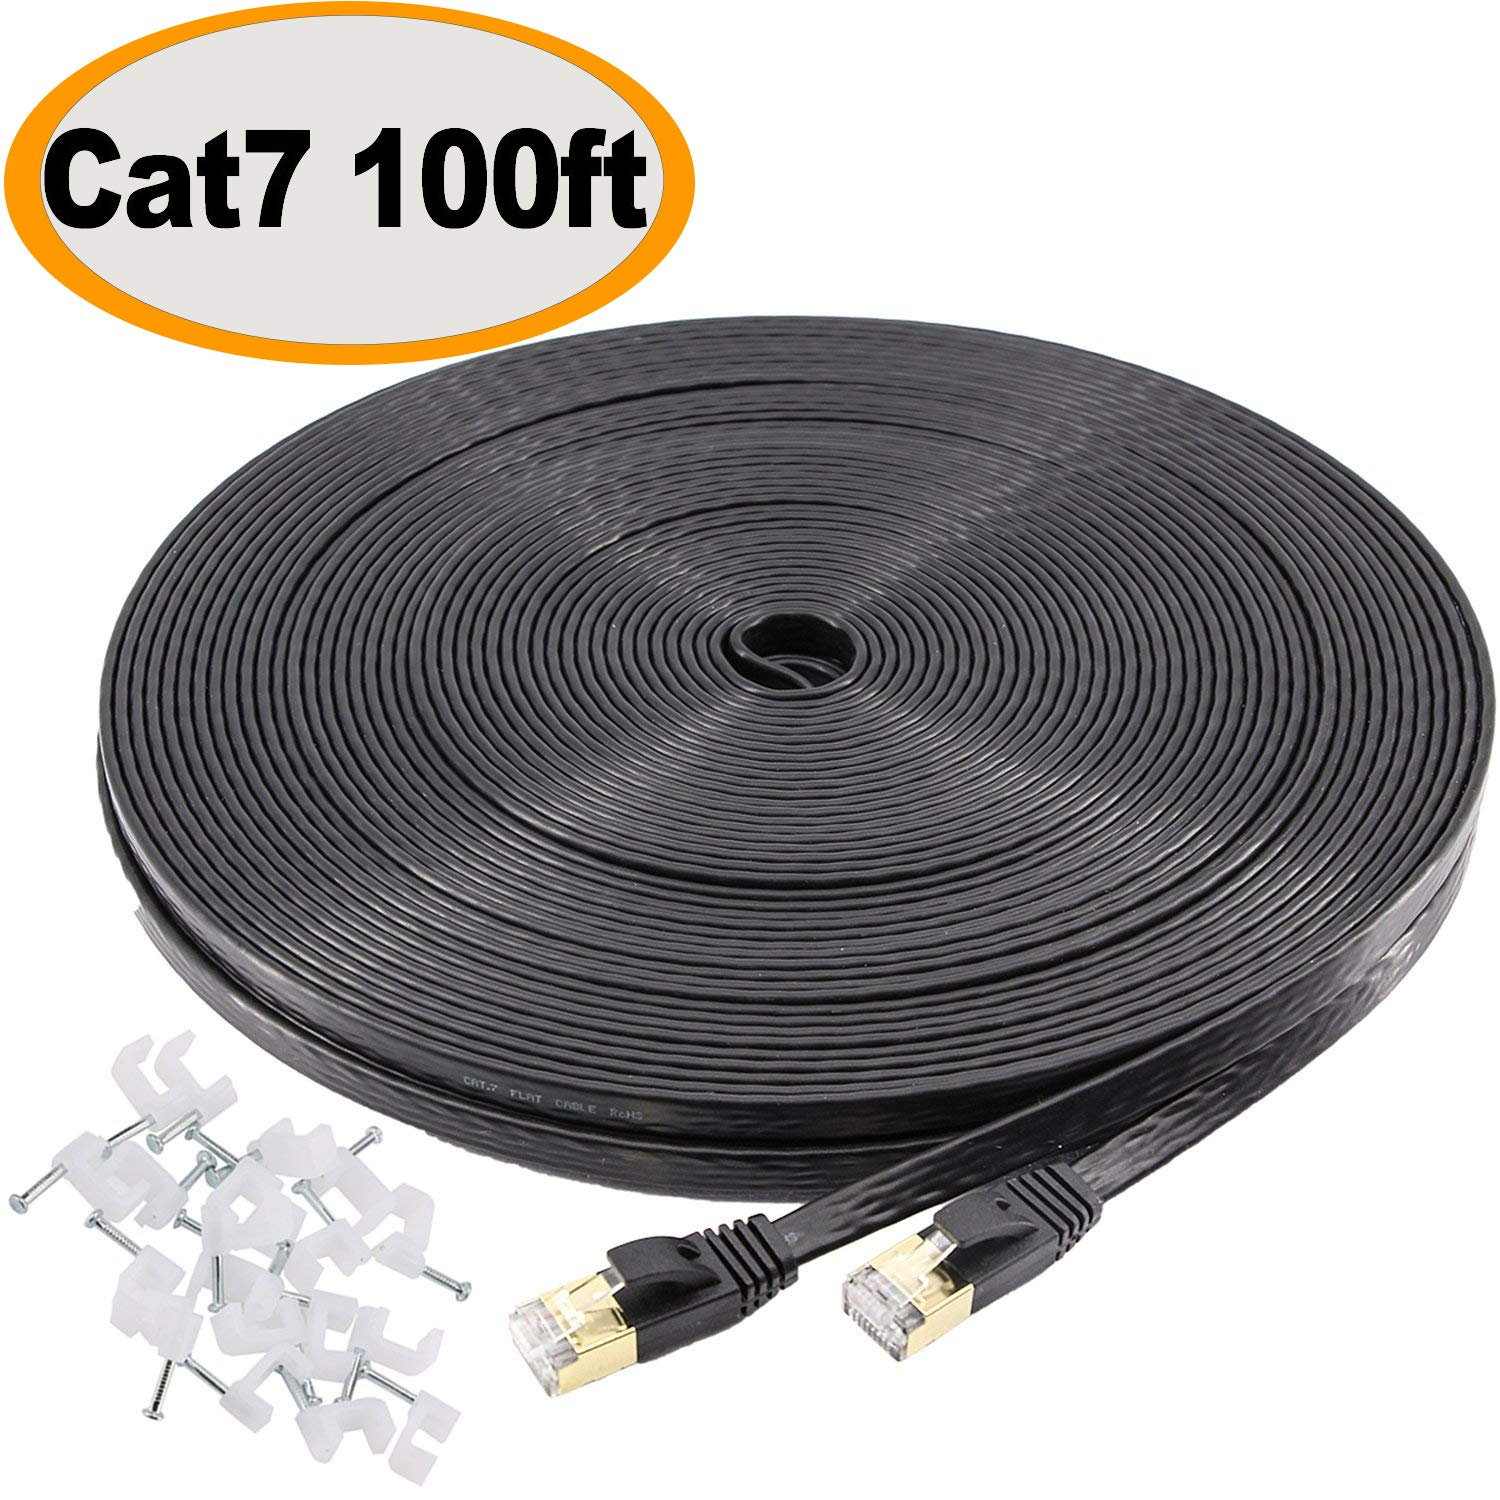 Jadaol Cat 7 Ethernet Cable 100 ft SSTP Shielded Flat, Durable High Speed Internet LAN Computer Patch Cord, Faster Than Cat5e/cat6, Solid Rj45 Cat7 Network Wire for Router, Modem, Xbox, PS, TV- Black by Jadaol